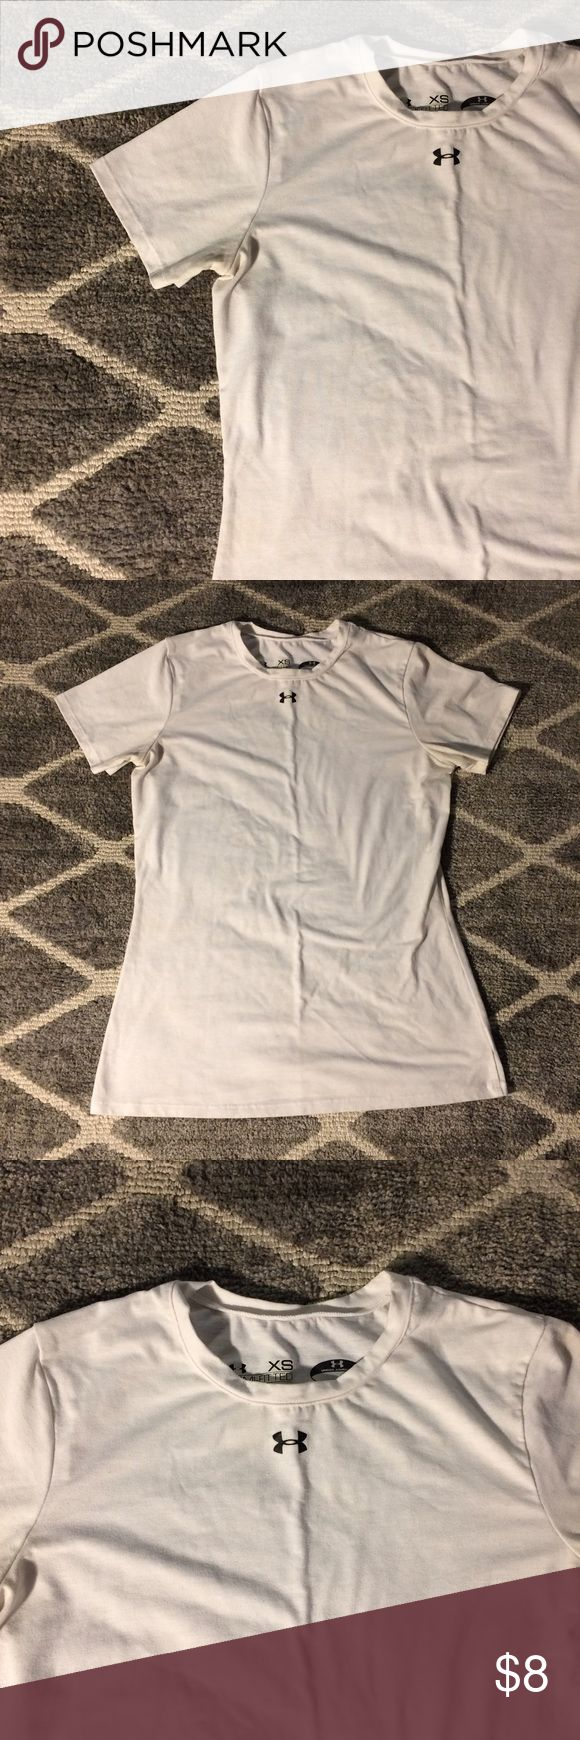 "White Under Armour T-Shirt White Under Armour semi-fitted ""Heat Gear"" workout U-neck t-shirt. Get this workout essential from me for cheap! :) Under Armour Tops Muscle Tees"